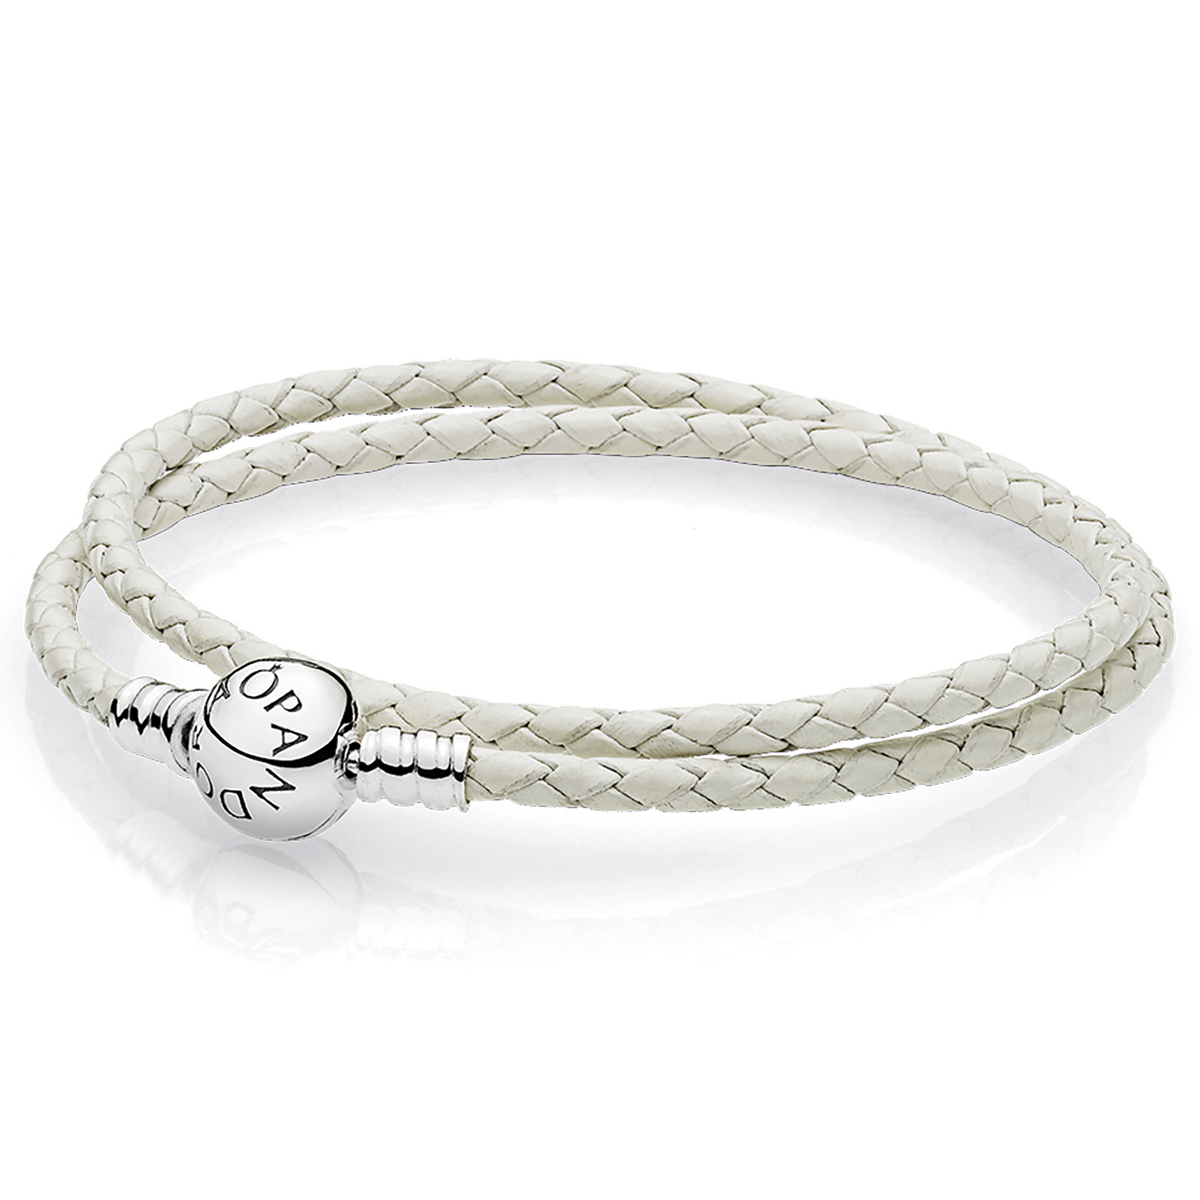 Pandora Ivory White Braided Double Leather Charm Bracelet